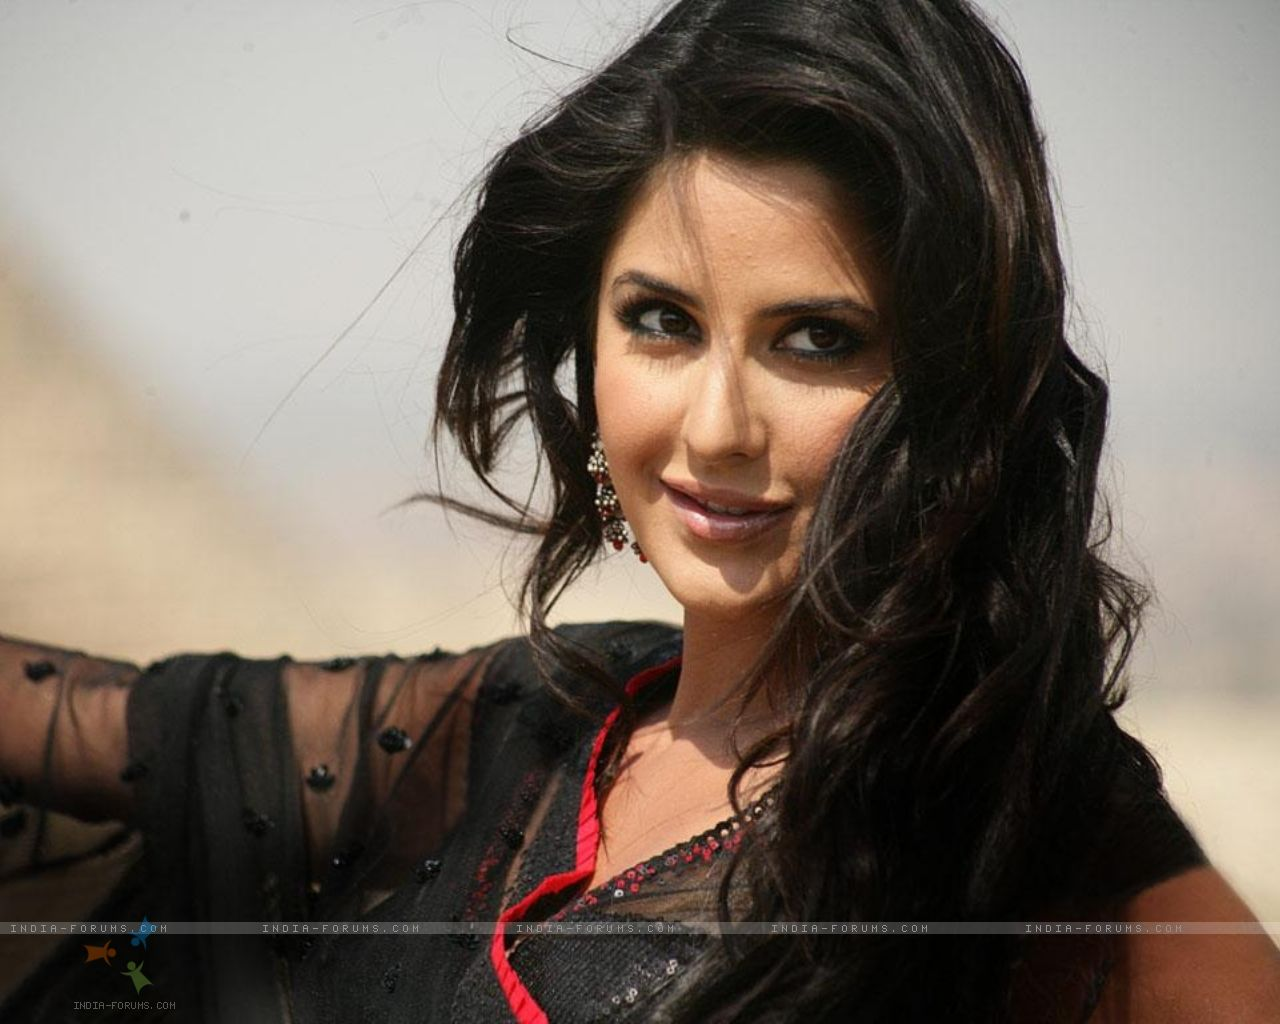 Opinion katrina kaif xxx photos hd was and